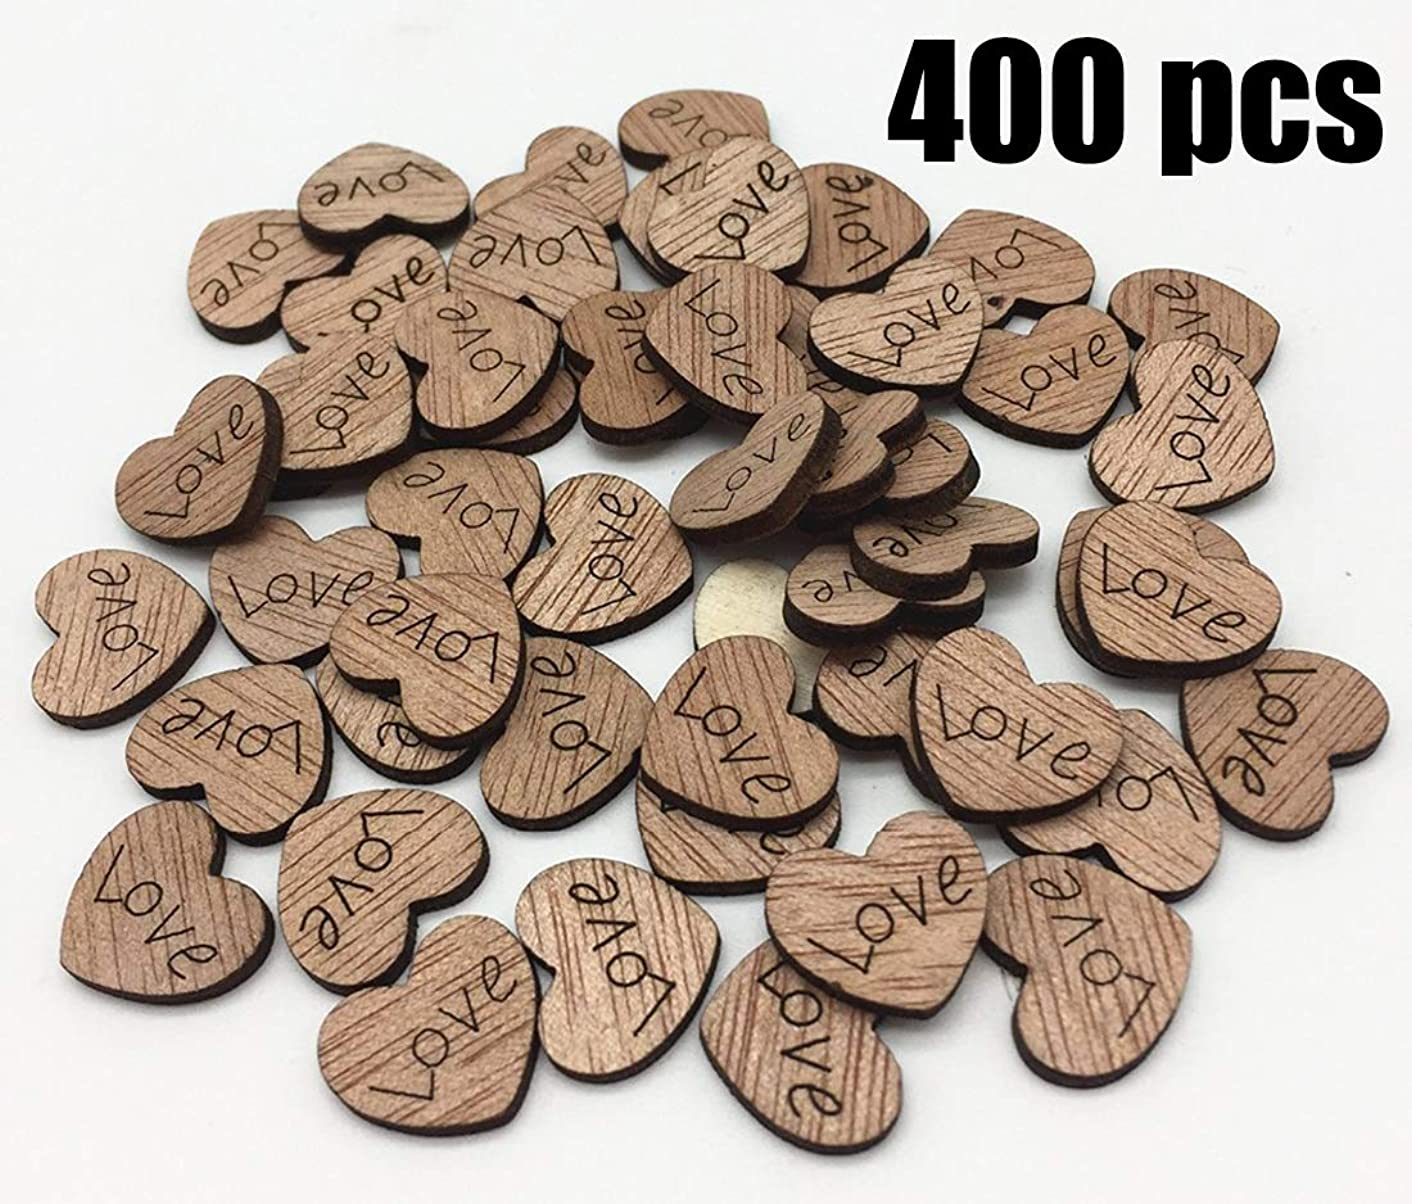 COOLJOY 400 Pcs Rustic Wooden Love Heart Table Scatter for Wedding Decorations, Perfect for Rustic Wedding Planning,Marriage,Bridal Showers,and DIY Crafts